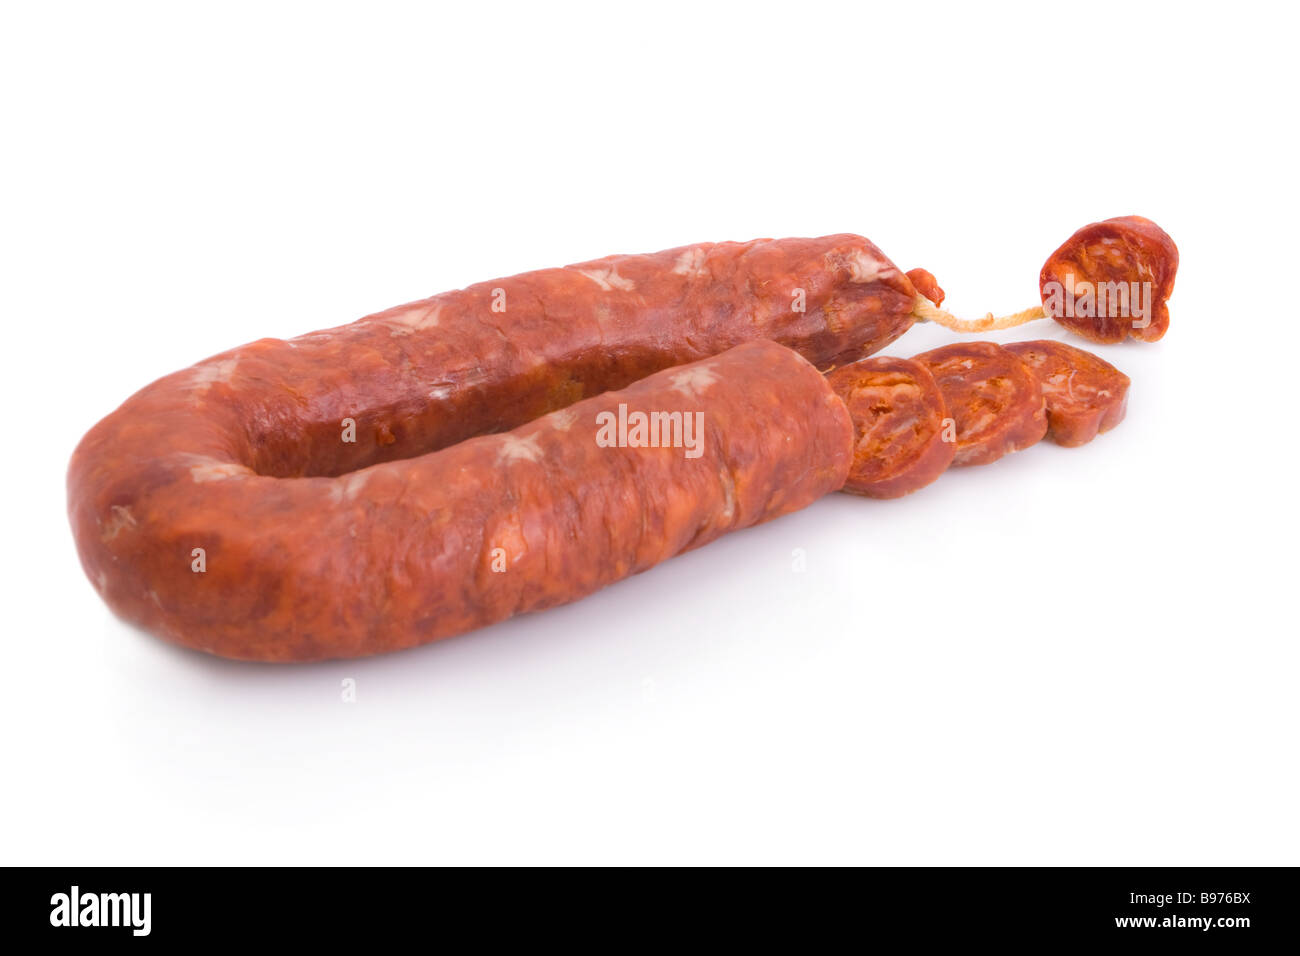 Iberian chorizo, from Barrancos - Alentejo region, Portugal (Chouriço) - isolated on white - Stock Image